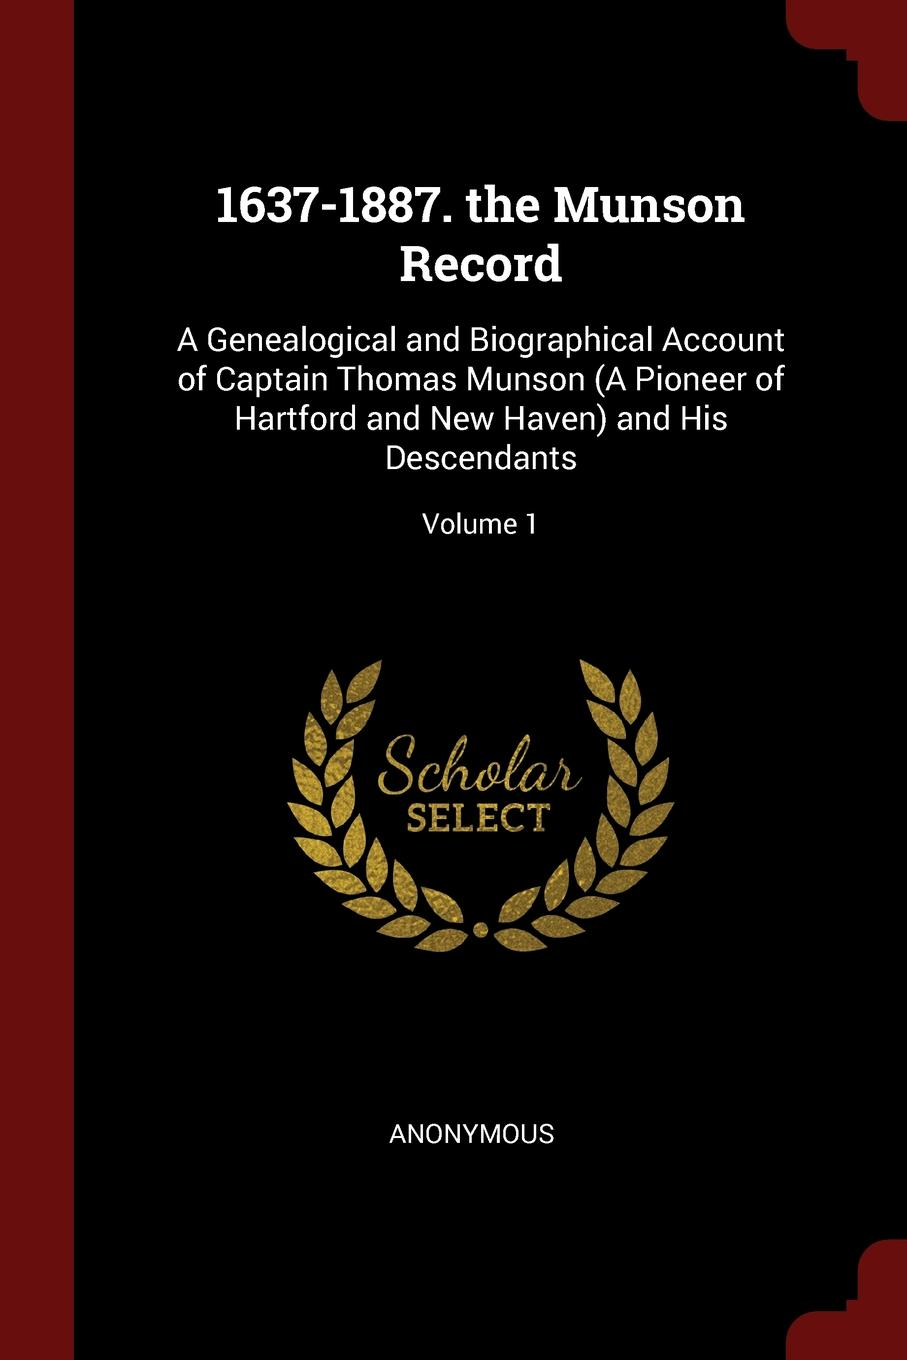 M. l'abbé Trochon 1637-1887. the Munson Record. A Genealogical and Biographical Account of Captain Thomas Munson (A Pioneer of Hartford and New Haven) and His Descendants; Volume 1 new and original zd 70n optex photoelectric switch photoelectric sensor npn output